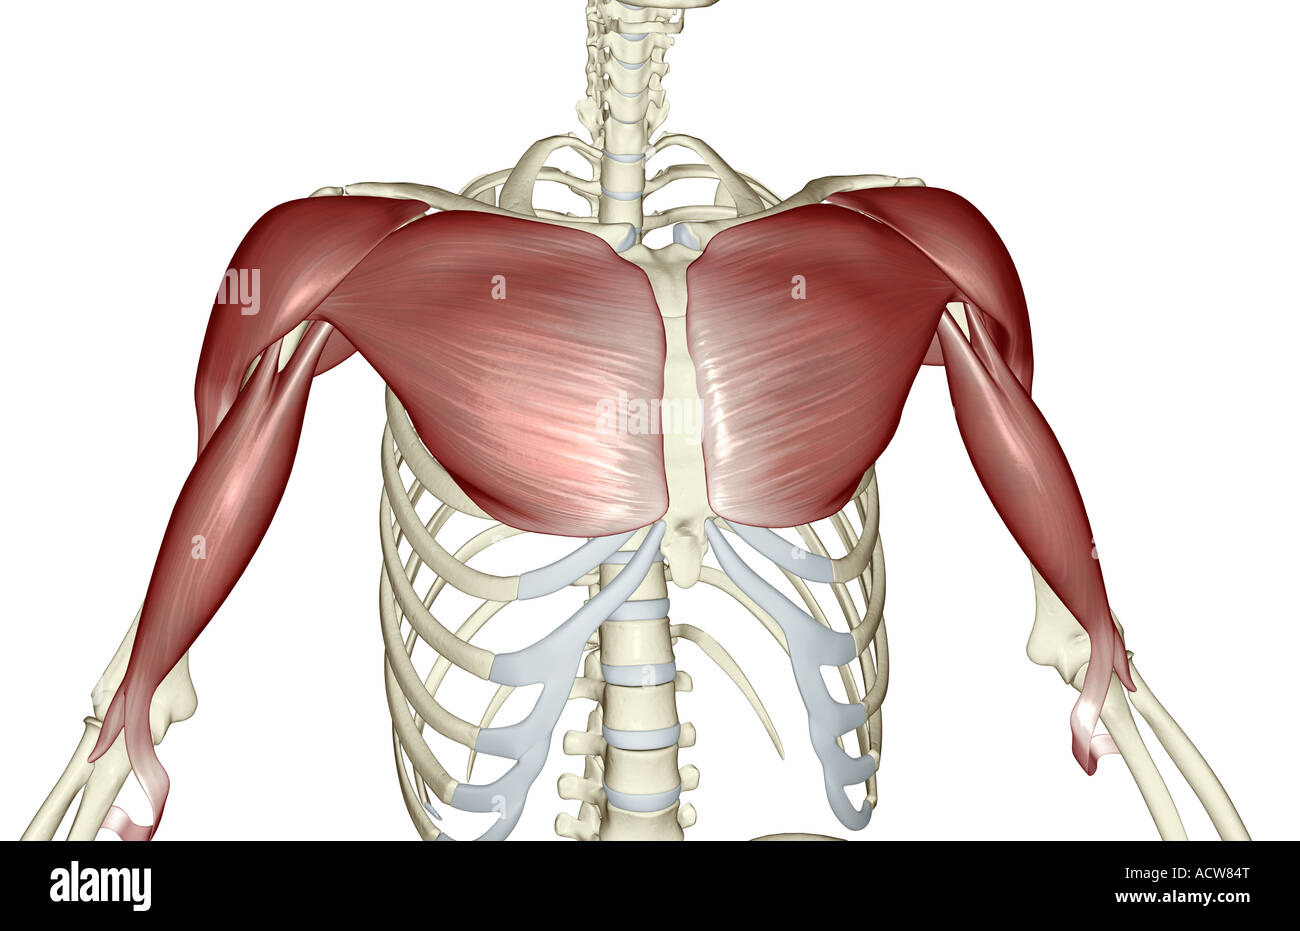 Muscles Of The Upper Arm Stock Photos Muscles Of The Upper Arm